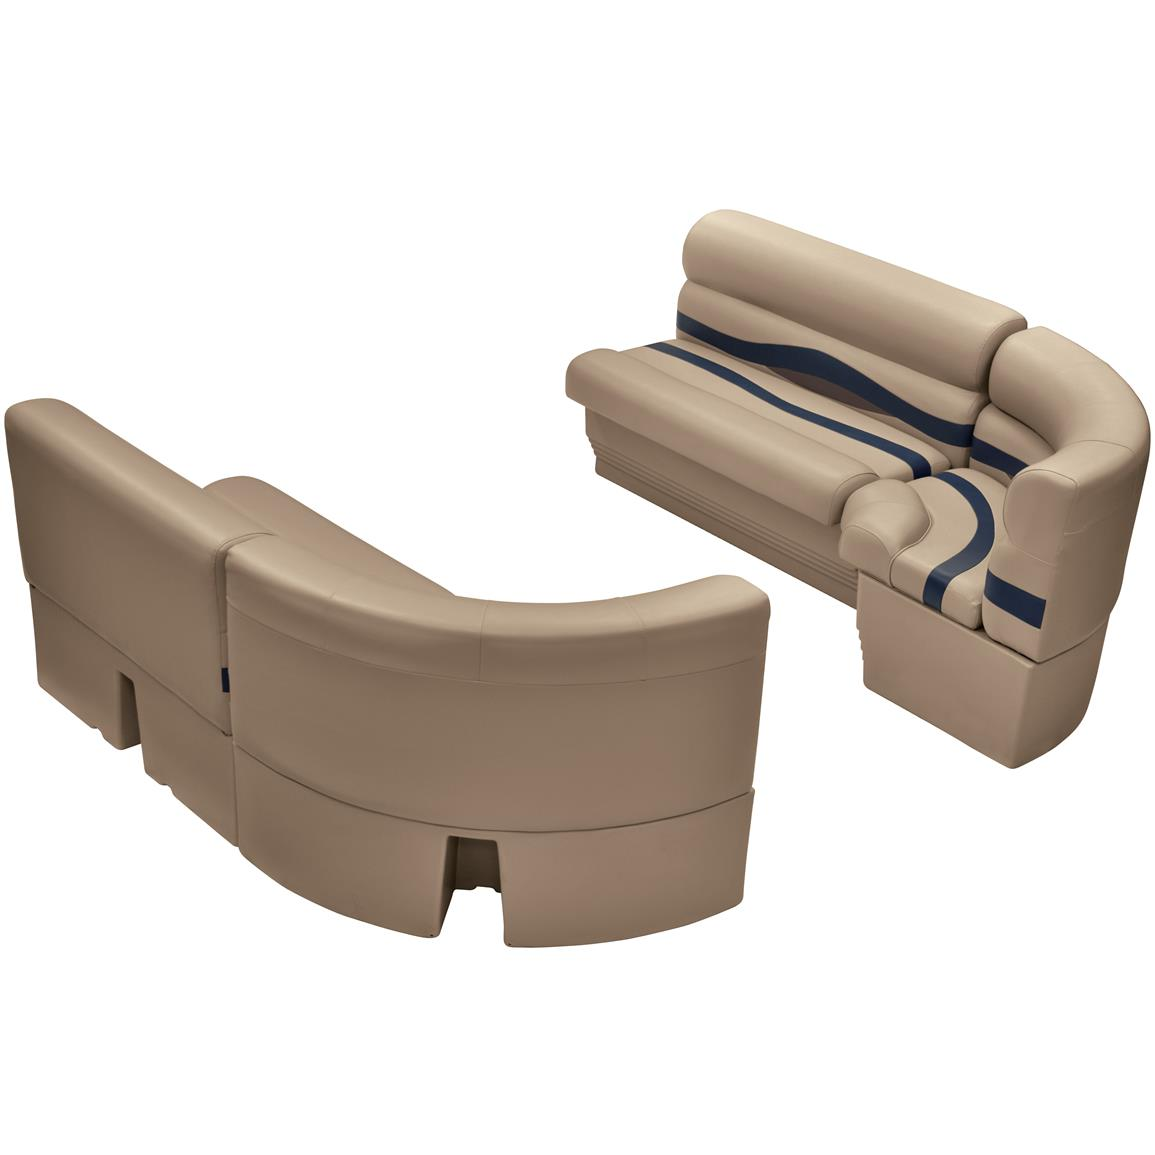 Wise® Premier Pontoon Medium Bow Radius Front Seating Group, Color A: Mocha Java Punch / Navy / Rock Salt